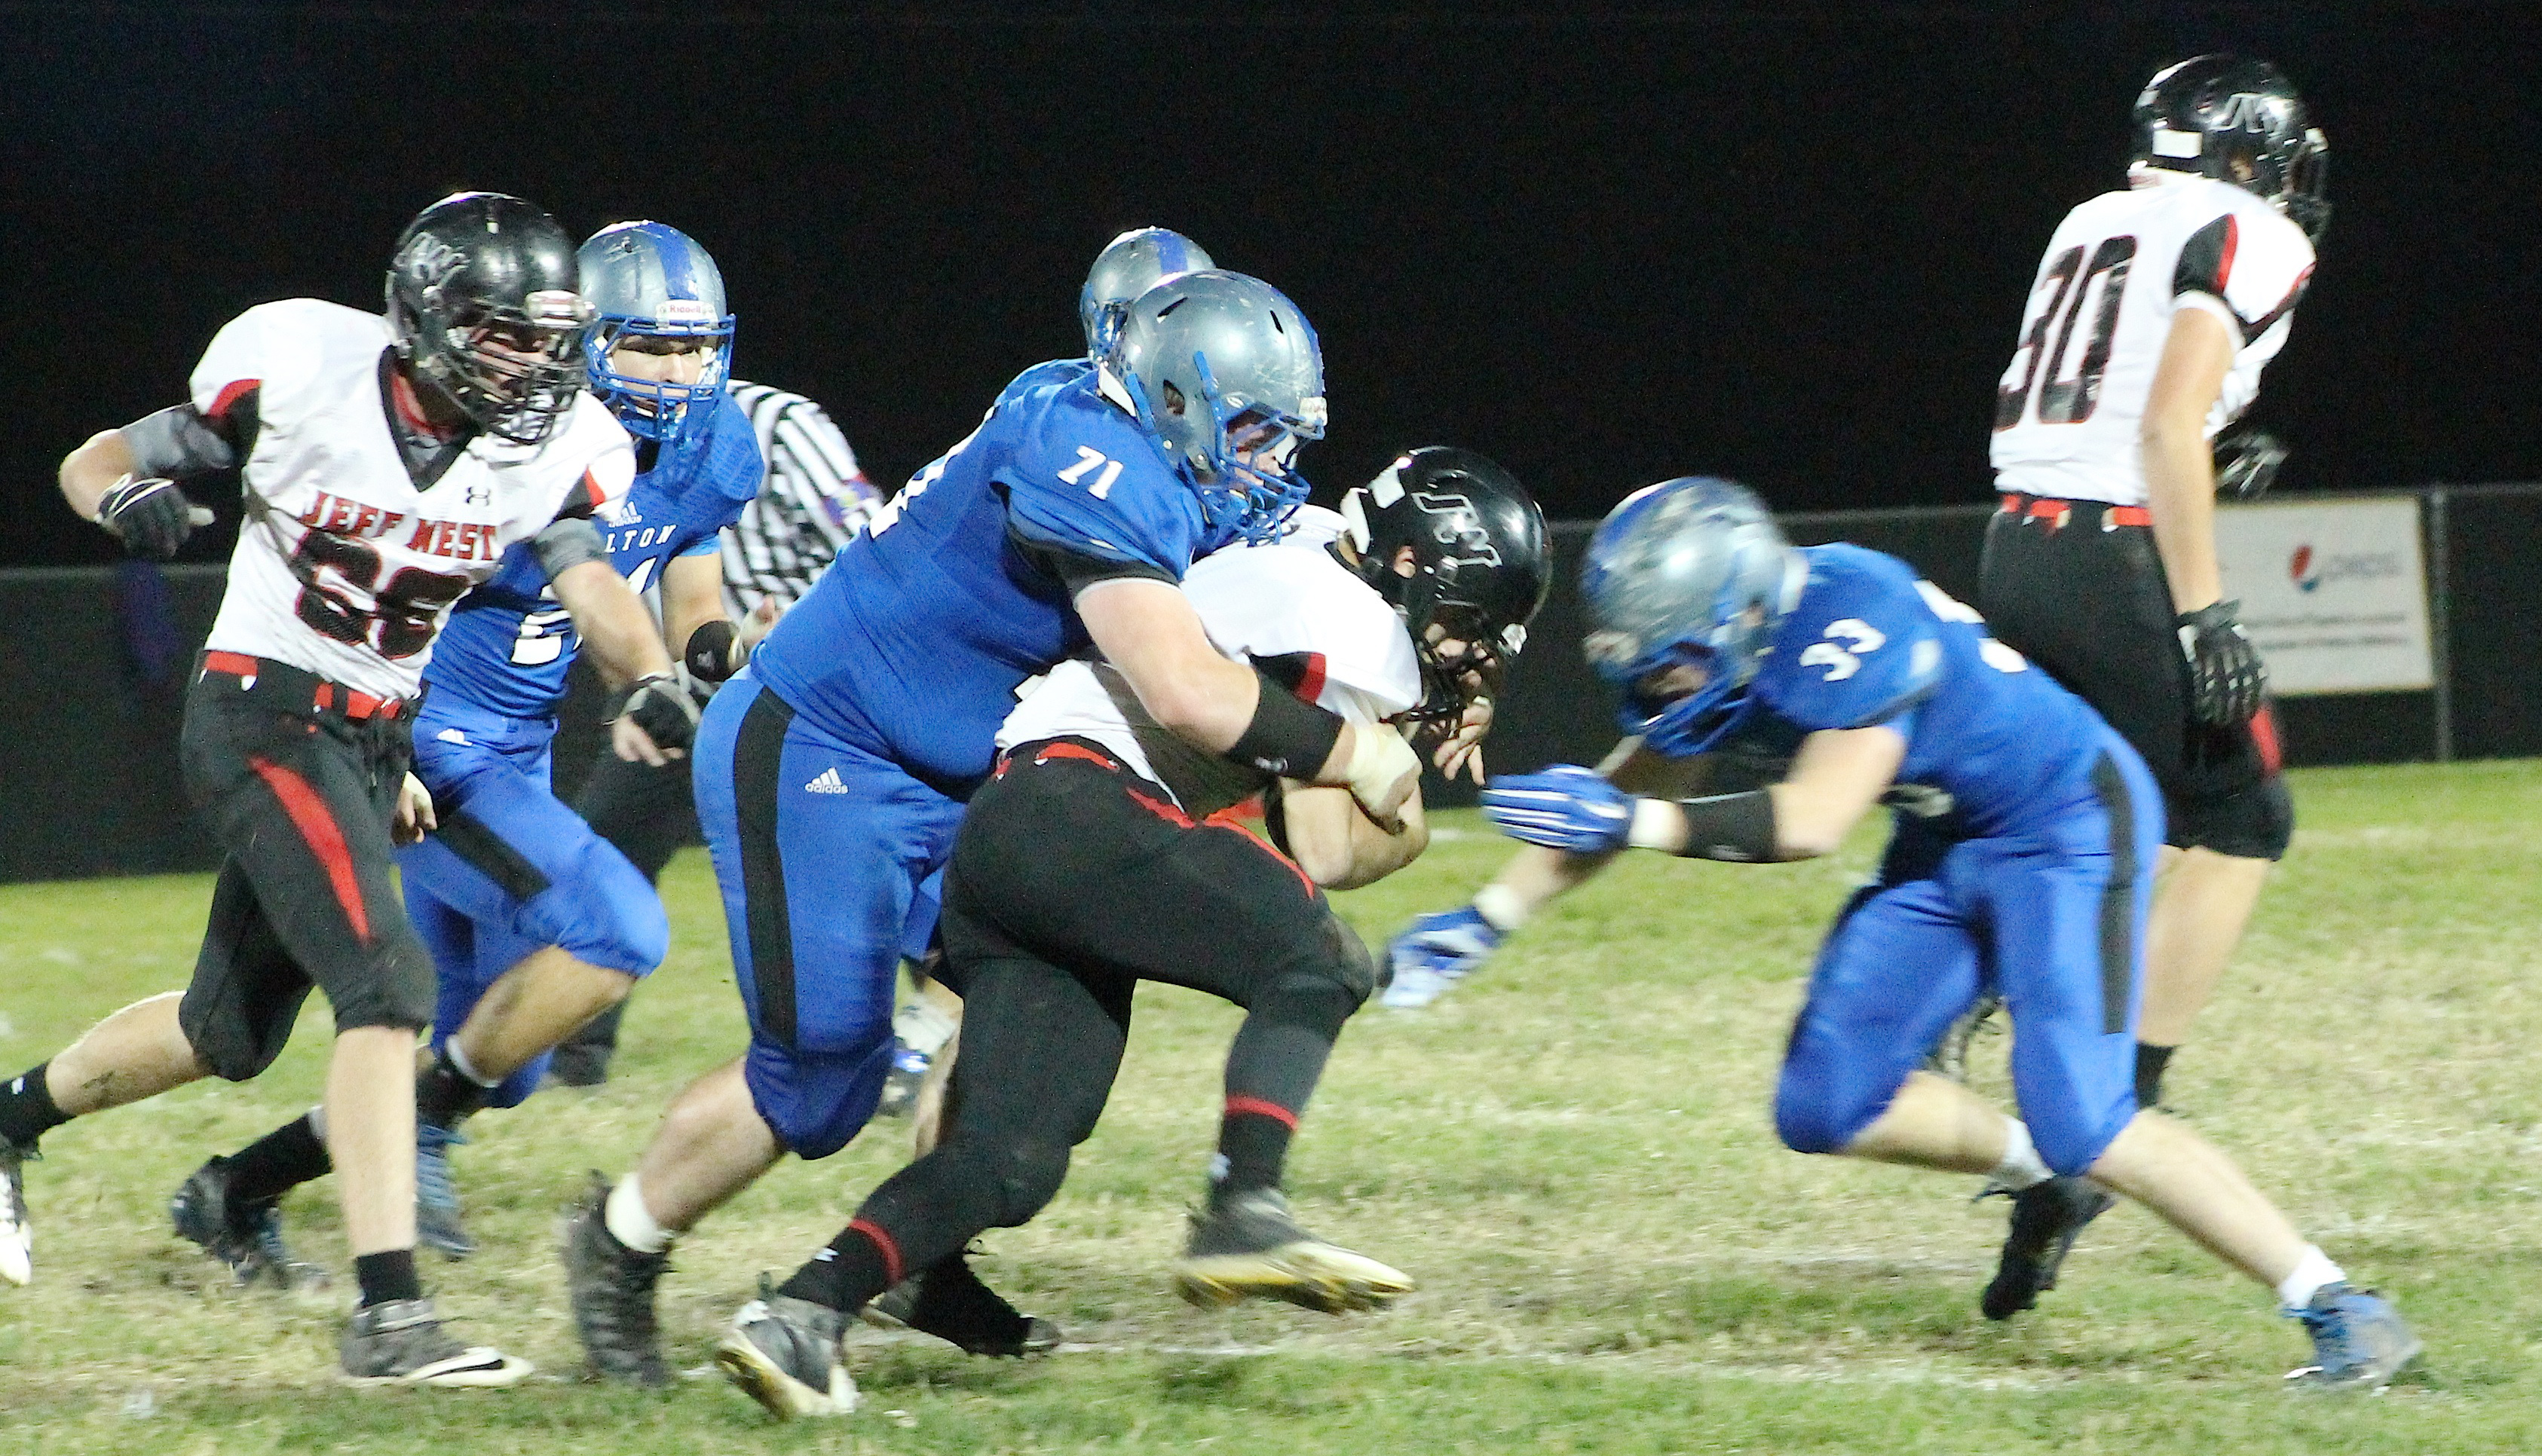 Lineman Cooper Allen (left) wraps up a Tiger running back while teammate Austin Frakes (right) closes in to assist on the tackle.